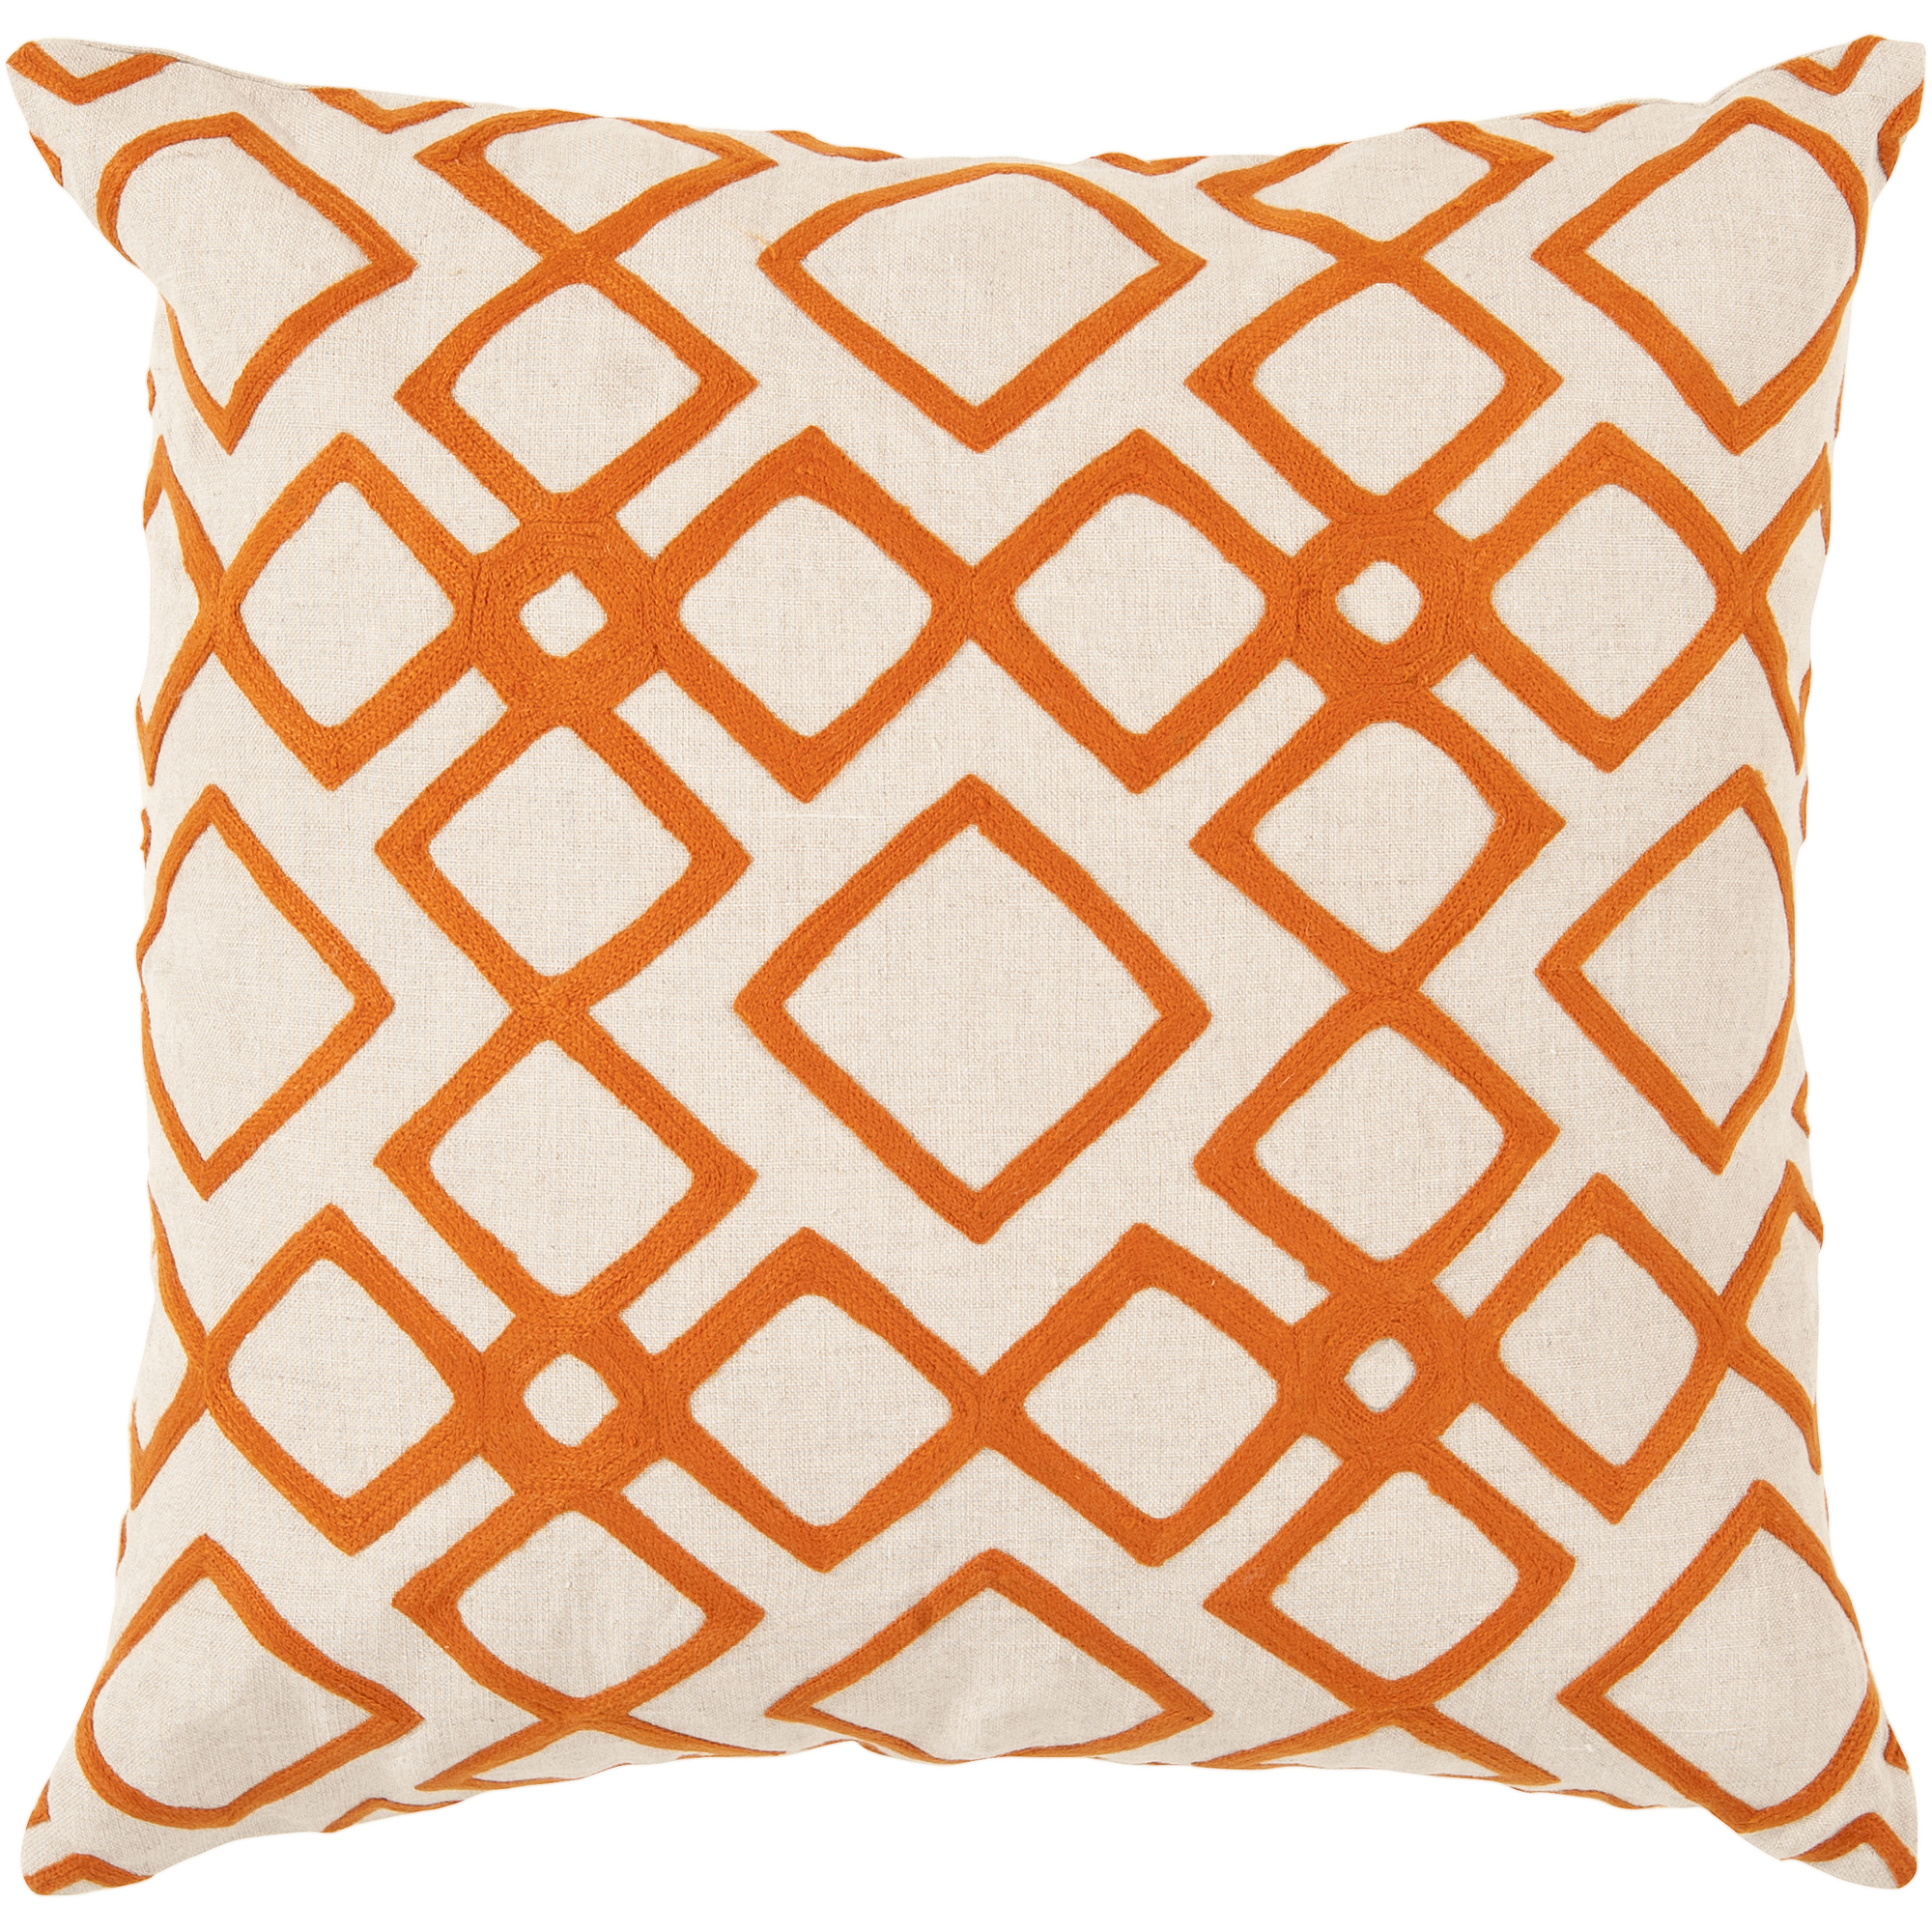 Art of Knot Beaumont Hand Crafted Wool Embroidery Linen Decorative Pillow with Poly Filler, Orange